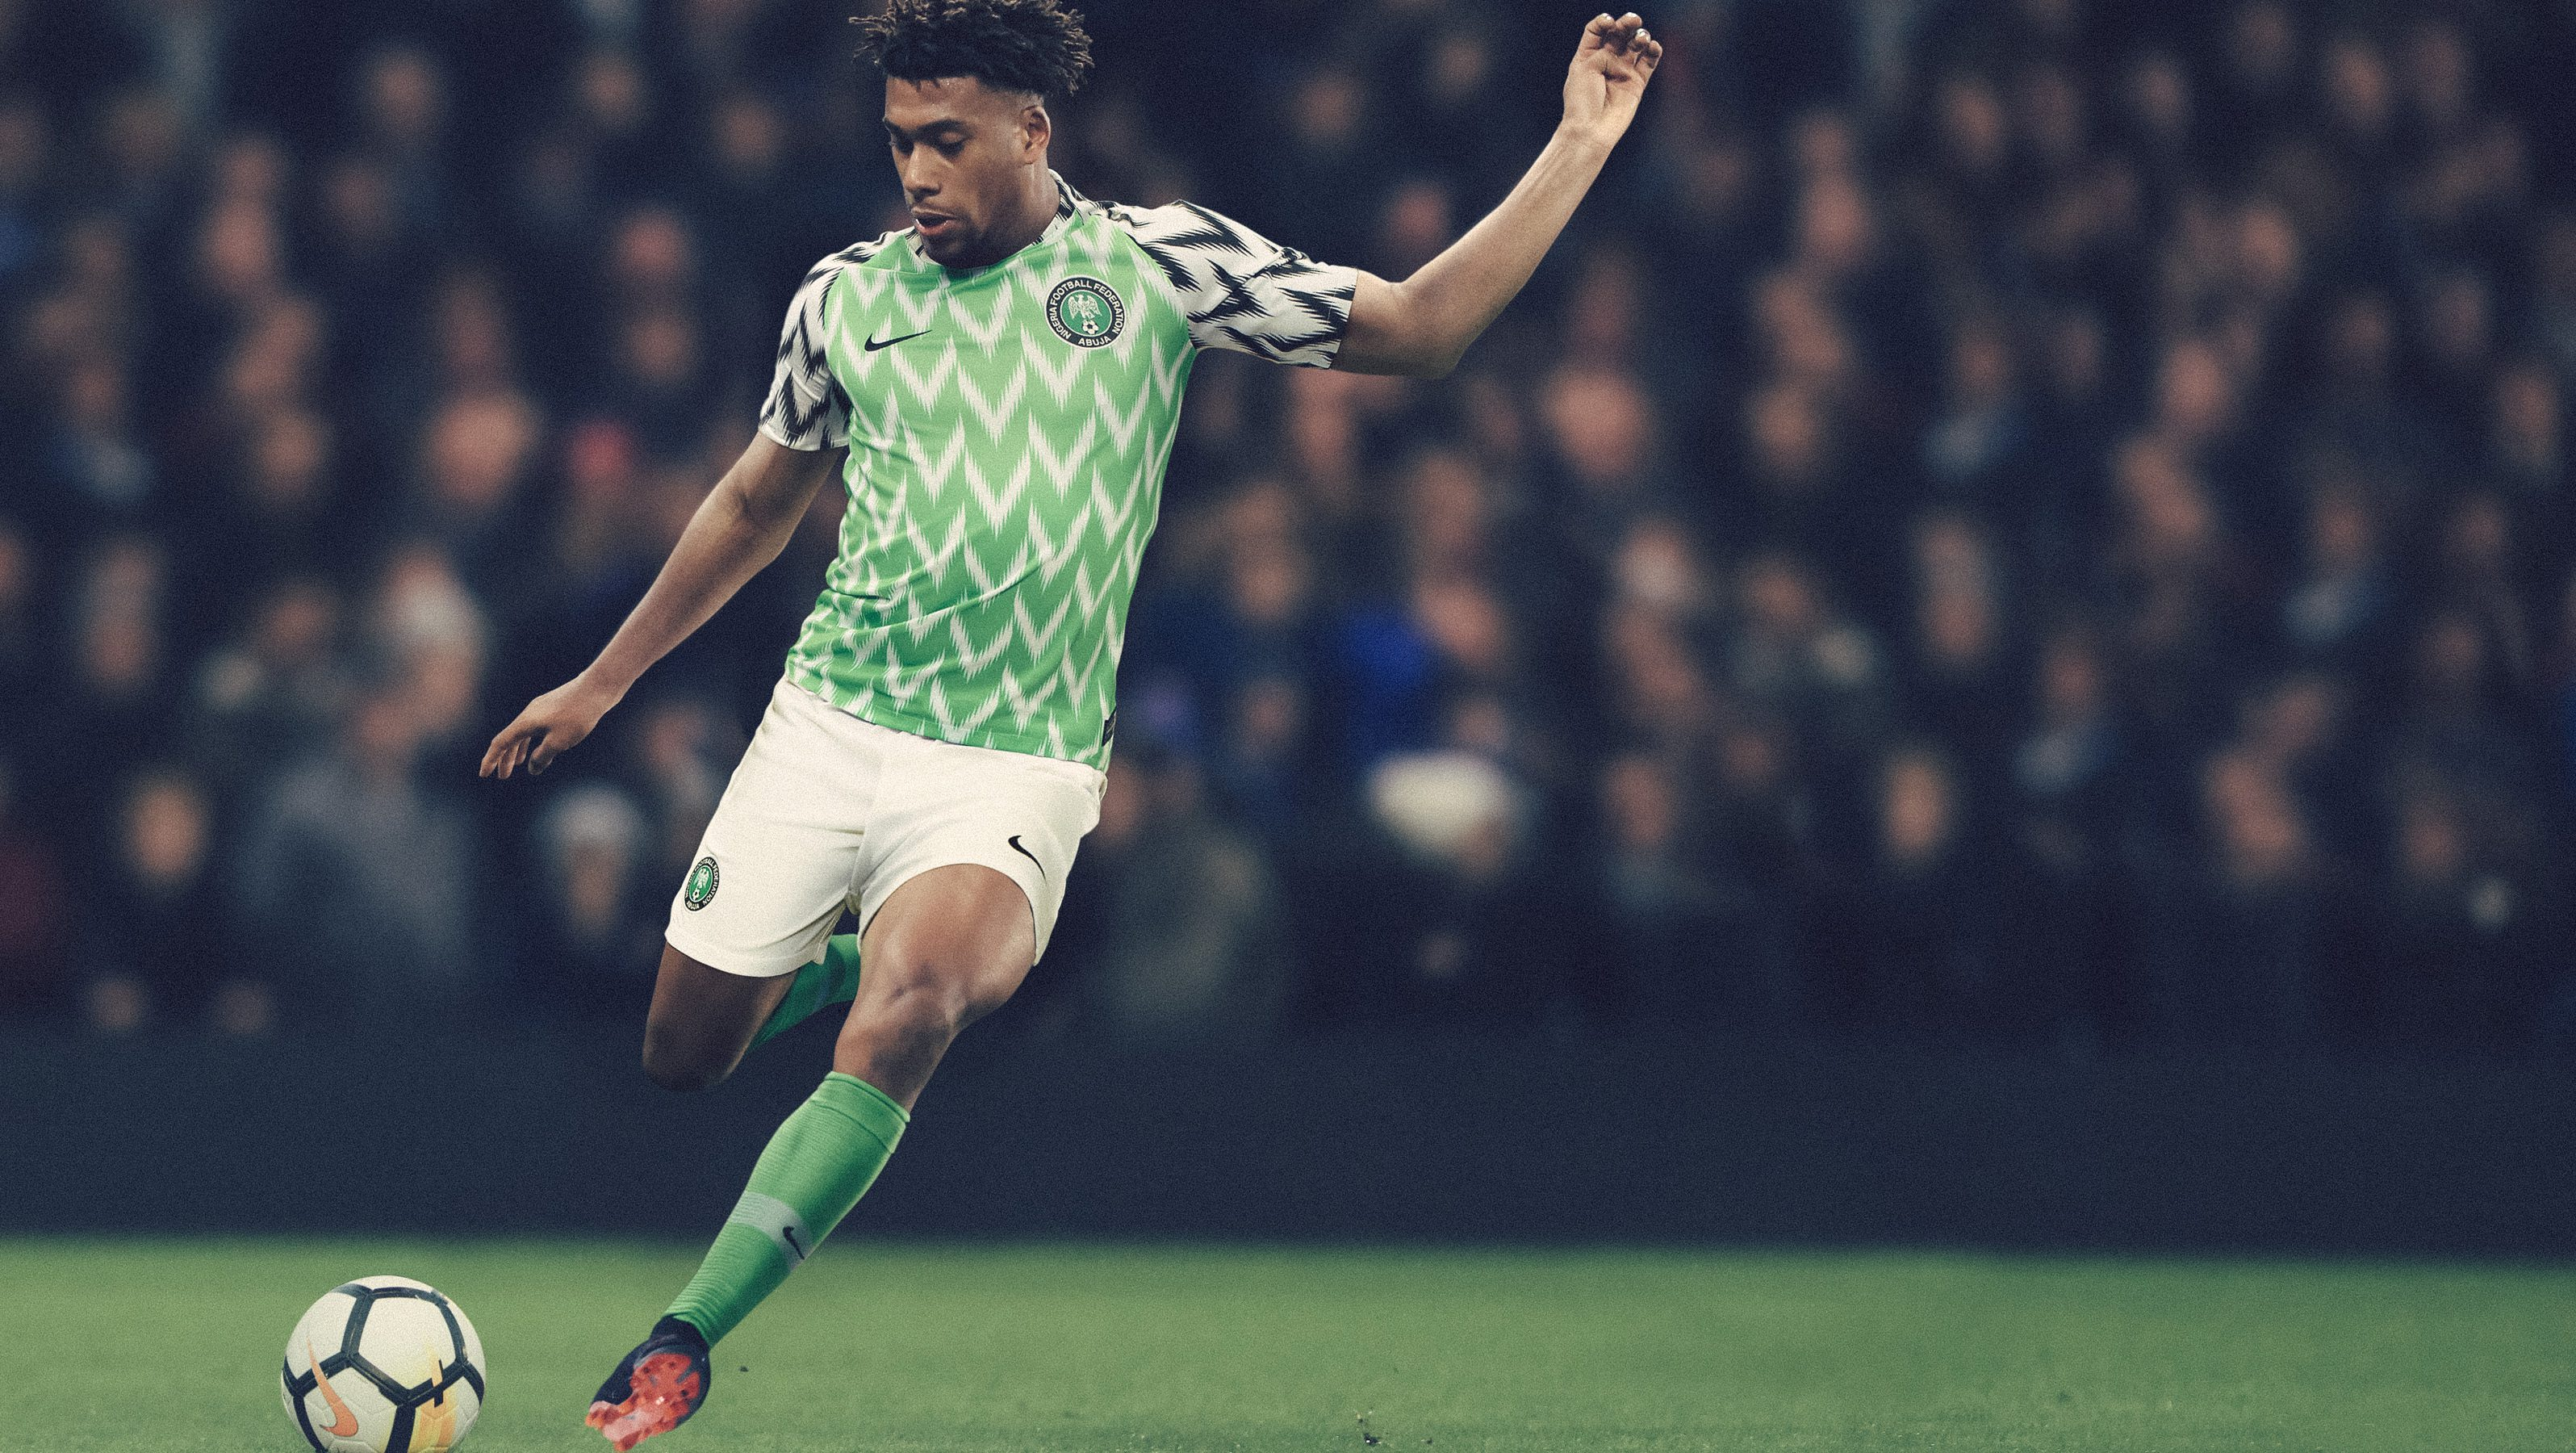 568edaf41 Nigeria says Nike has had record-breaking pre-orders for its World Cup  jersey